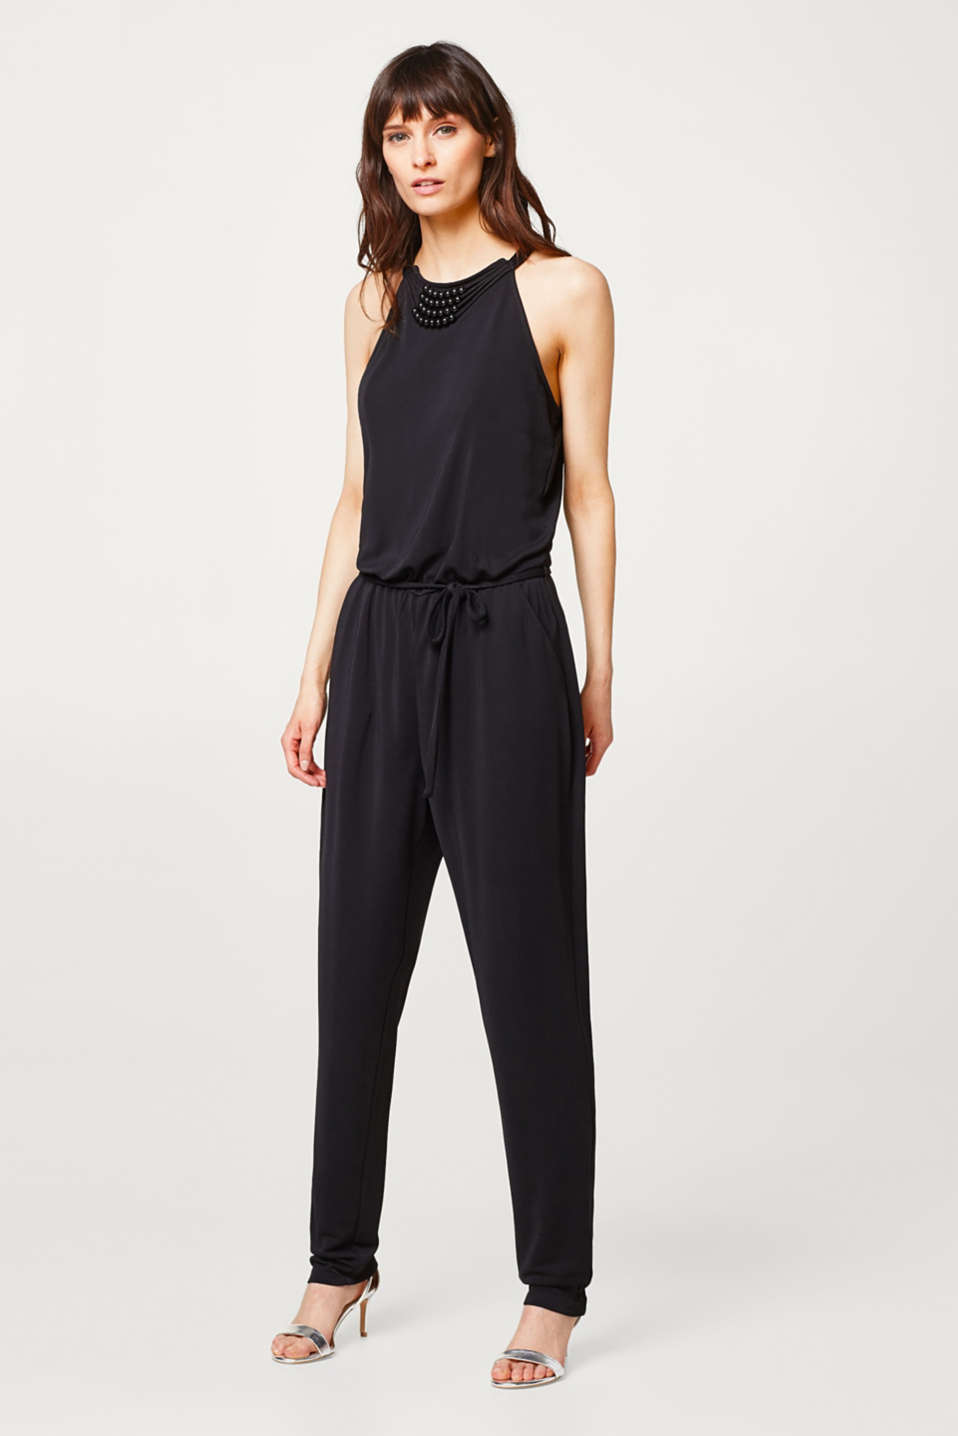 Soft draped jersey jumpsuit with decorative beads